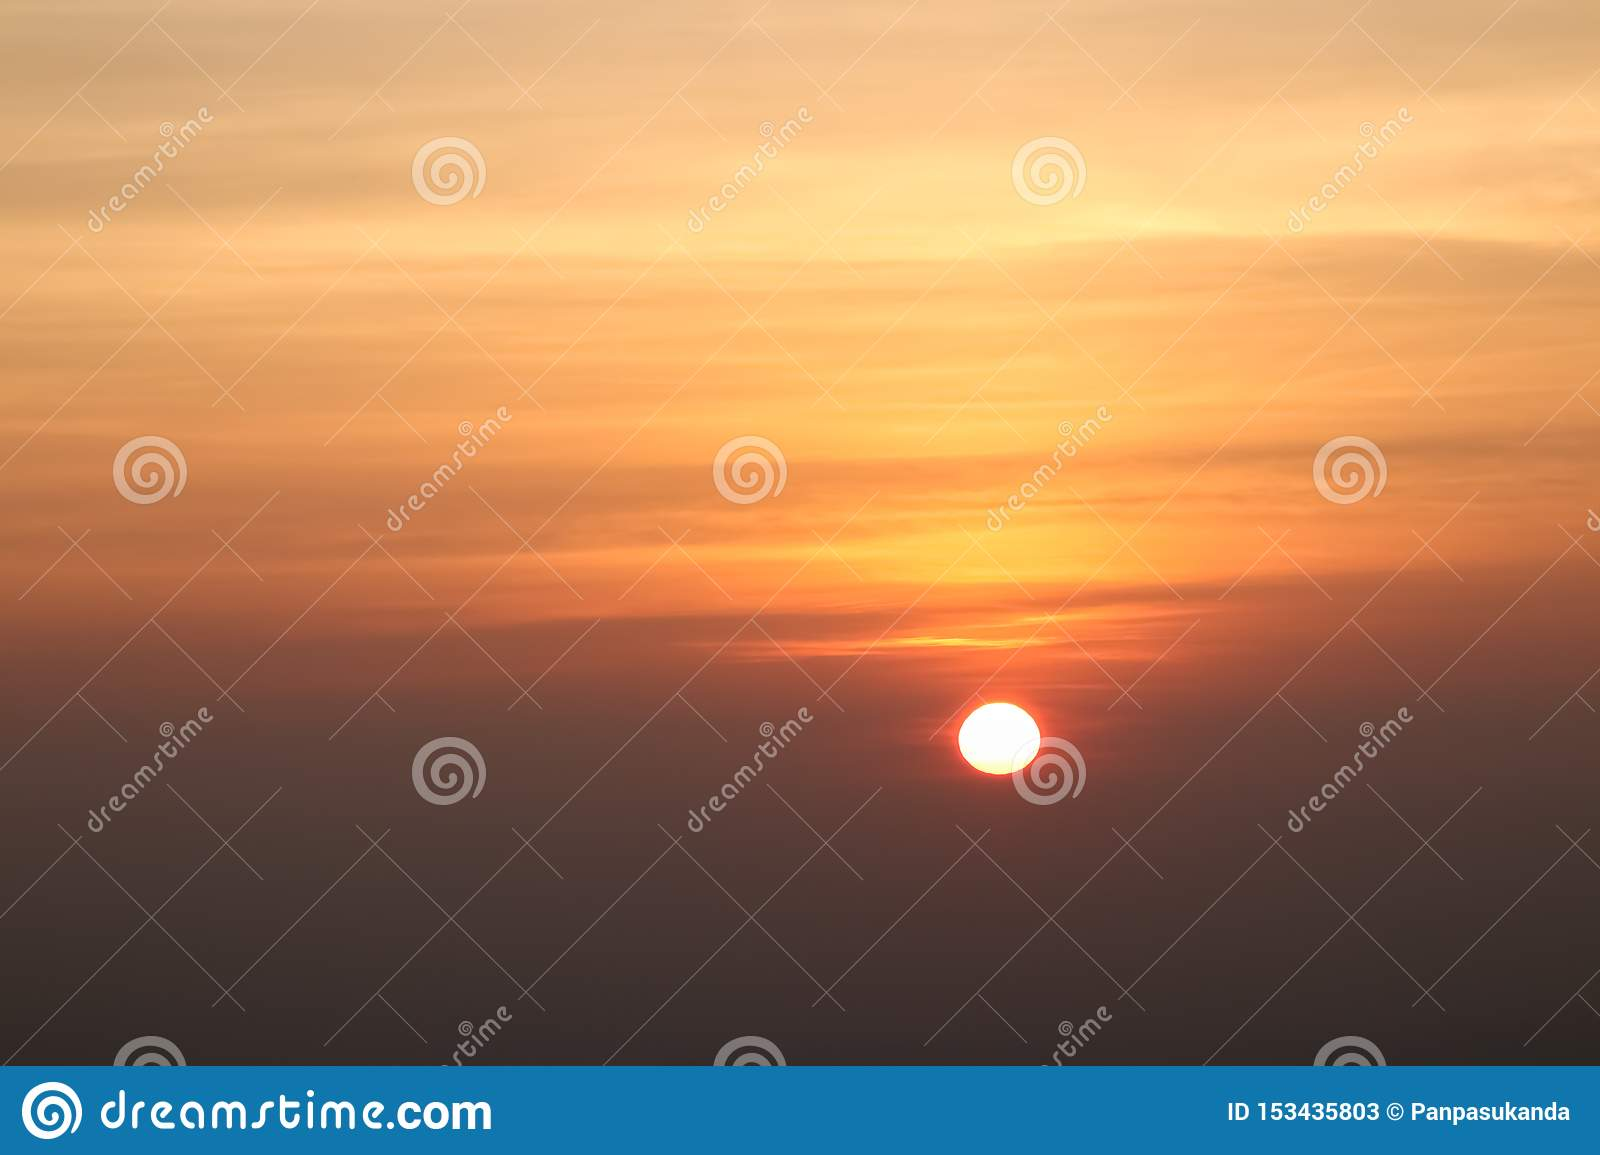 Beautiful sunset or sunrise sky above clouds with dramatic light